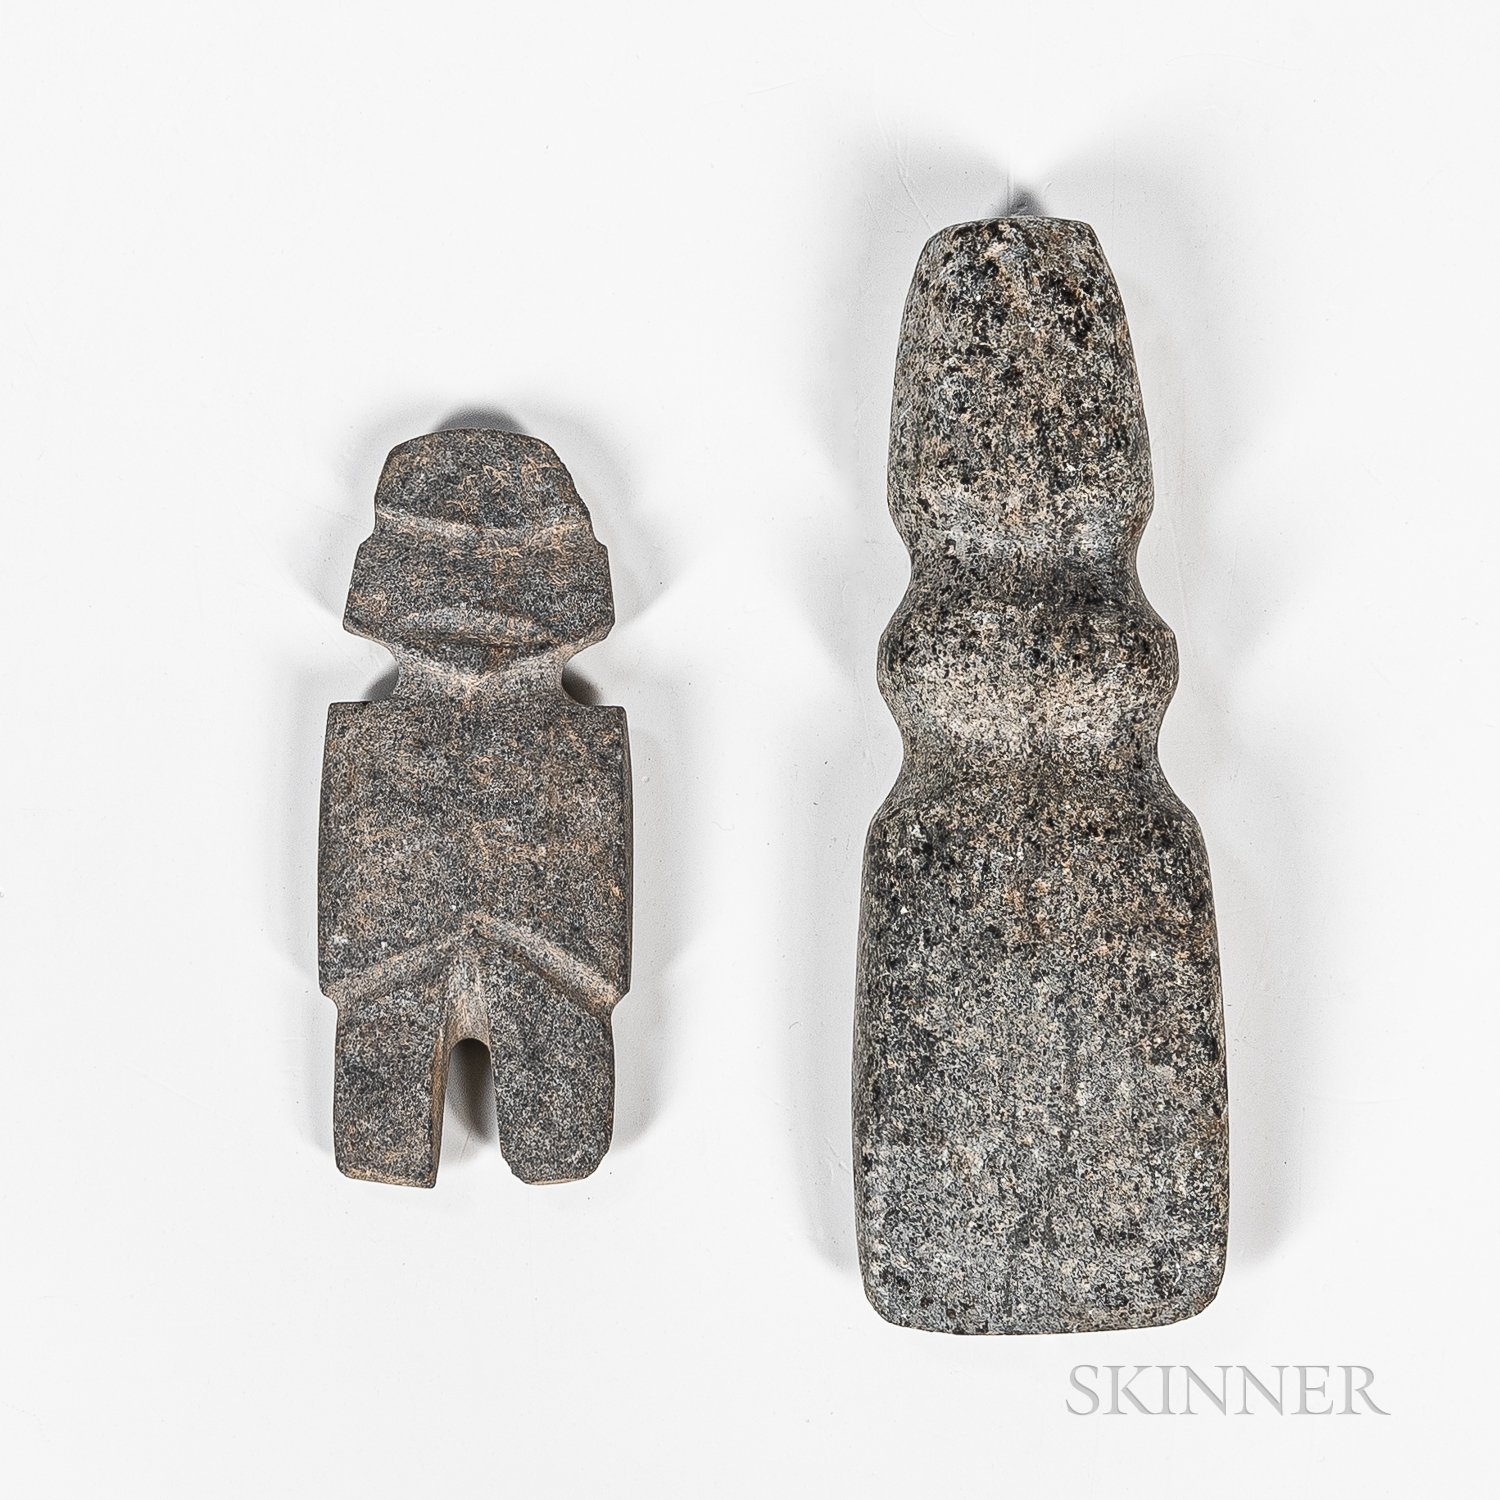 Two Pre-Columbian Stone Items